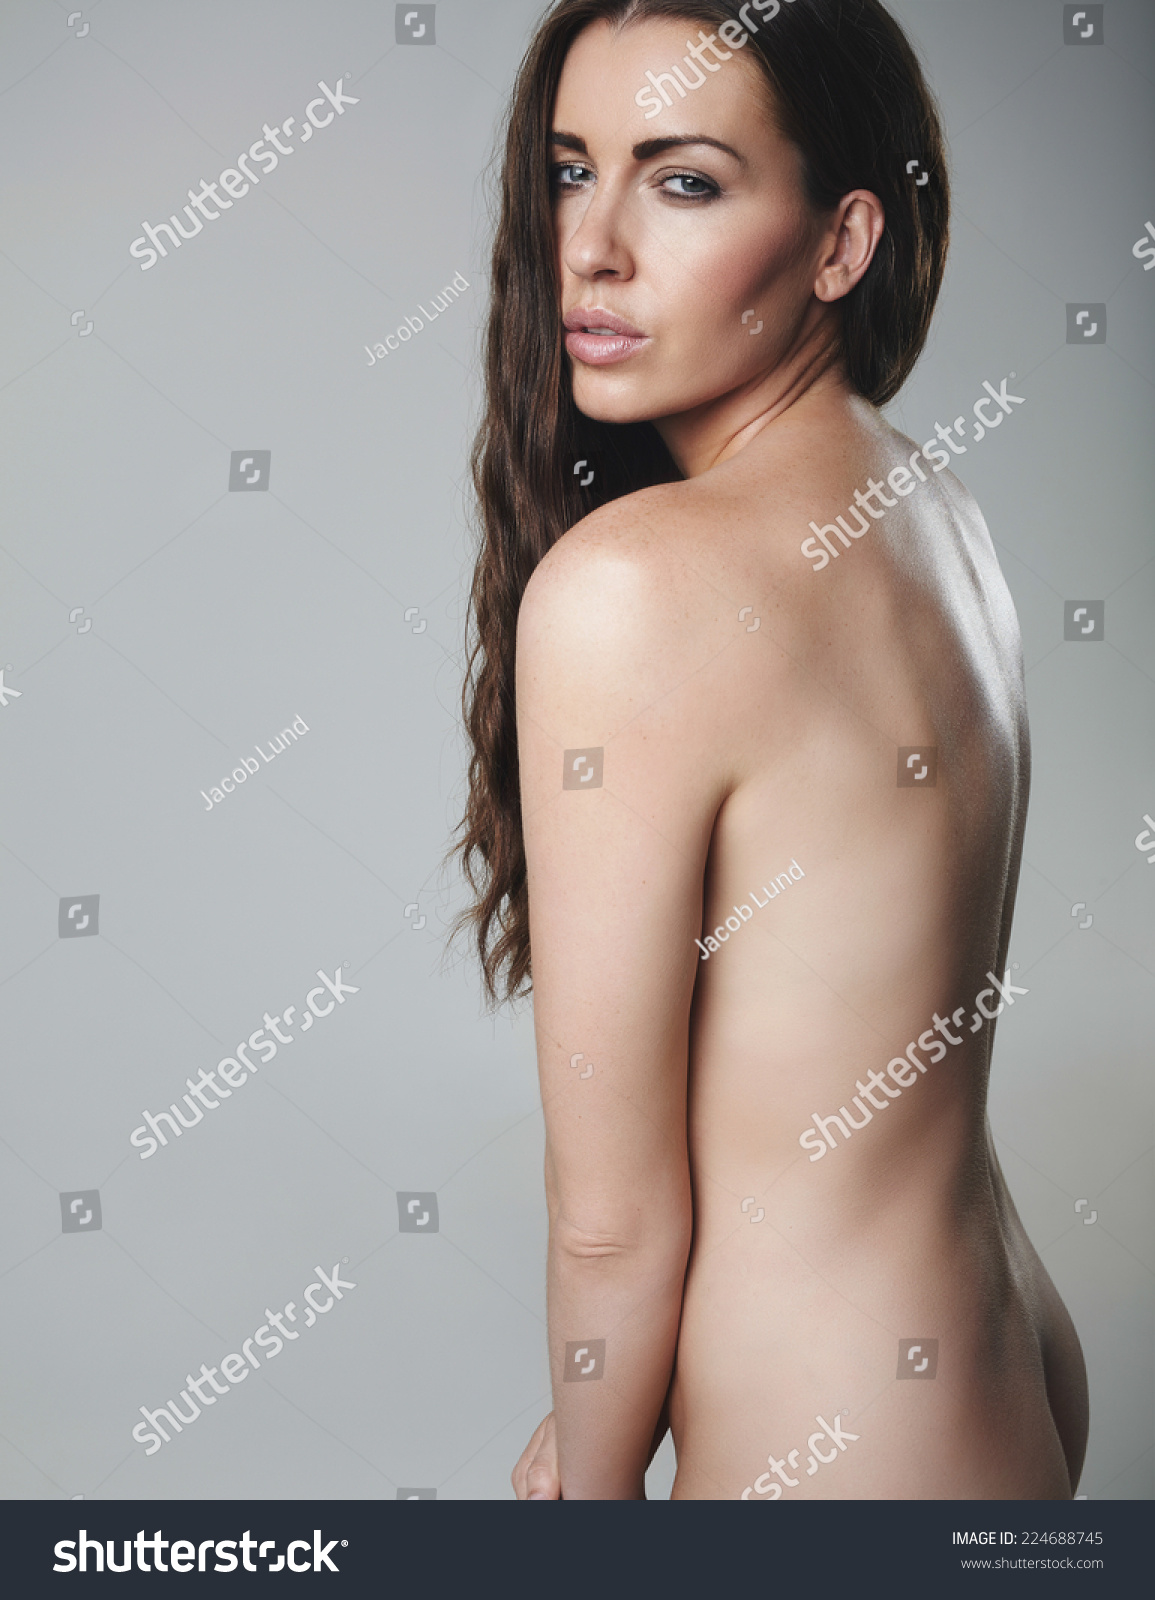 young nude model Sexy young brunette posing naked. Nude female model on grey background.